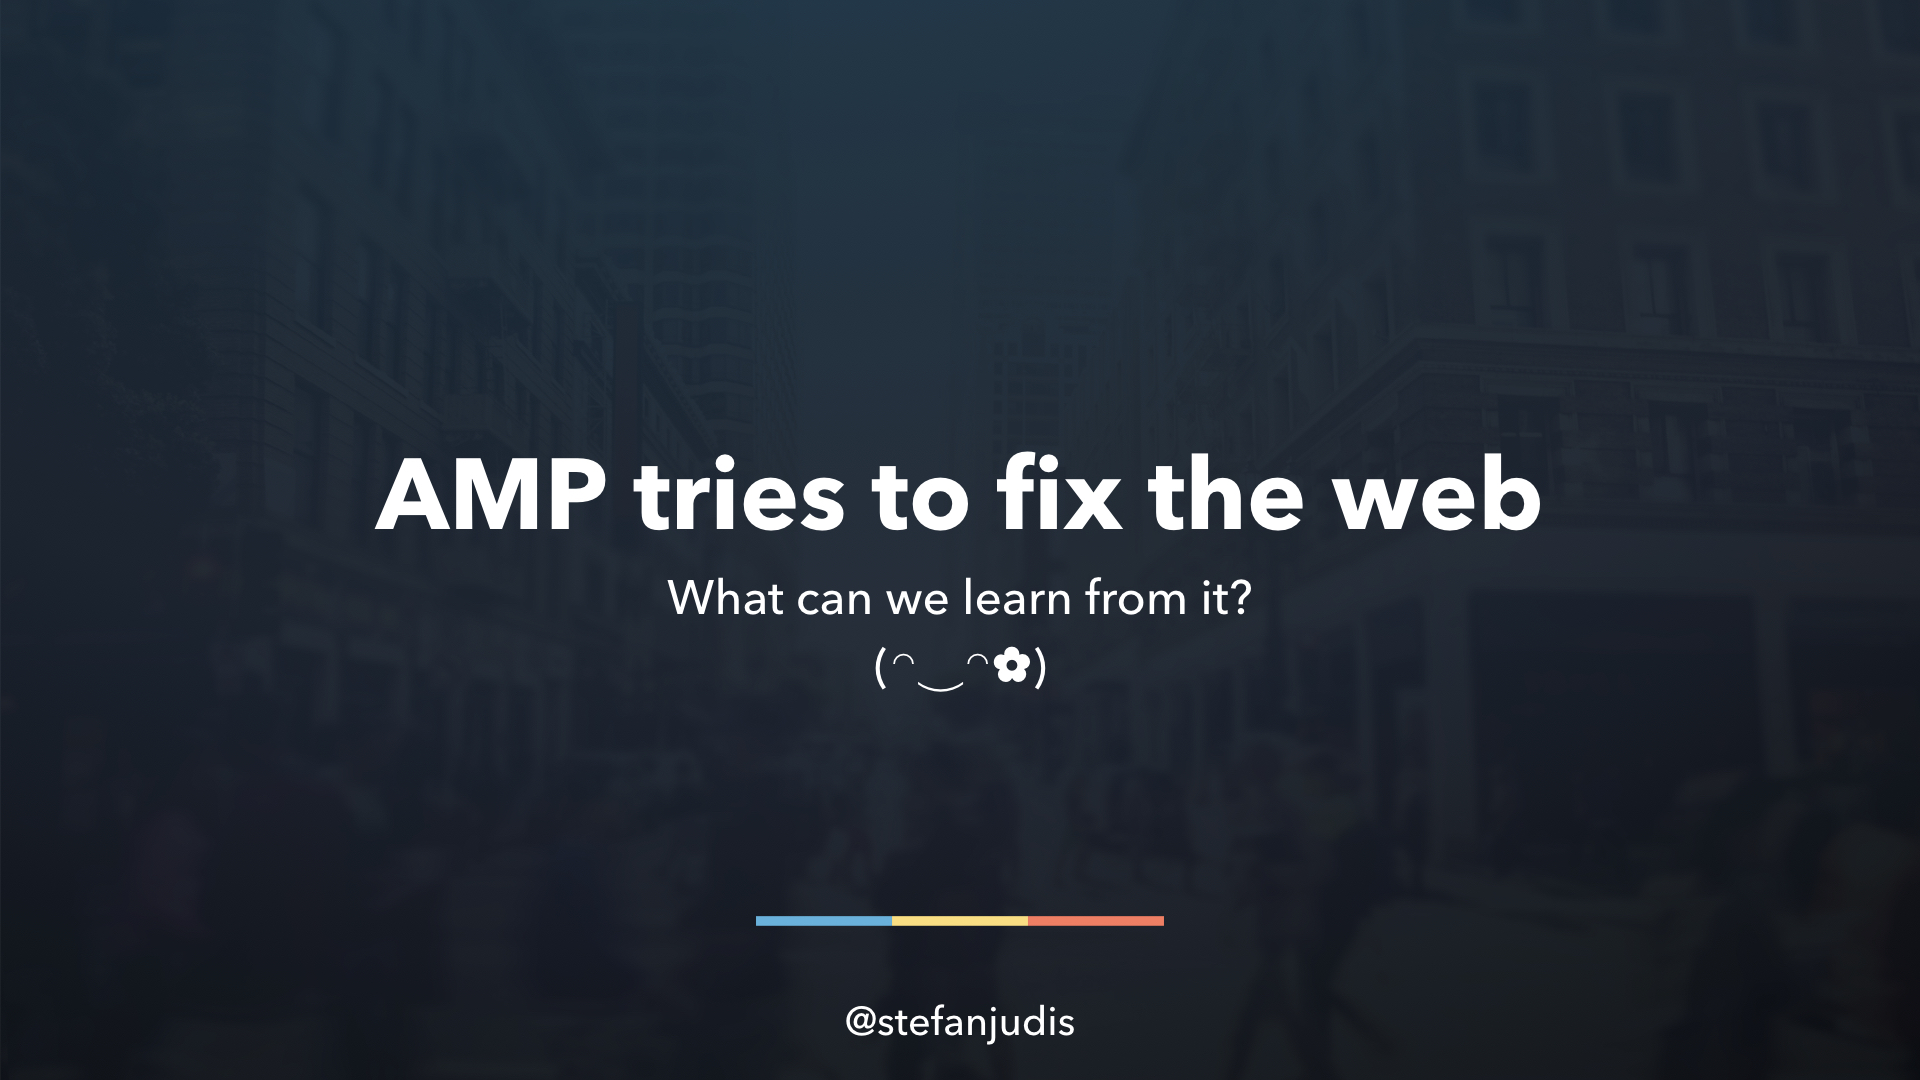 AMP tries to fix the web